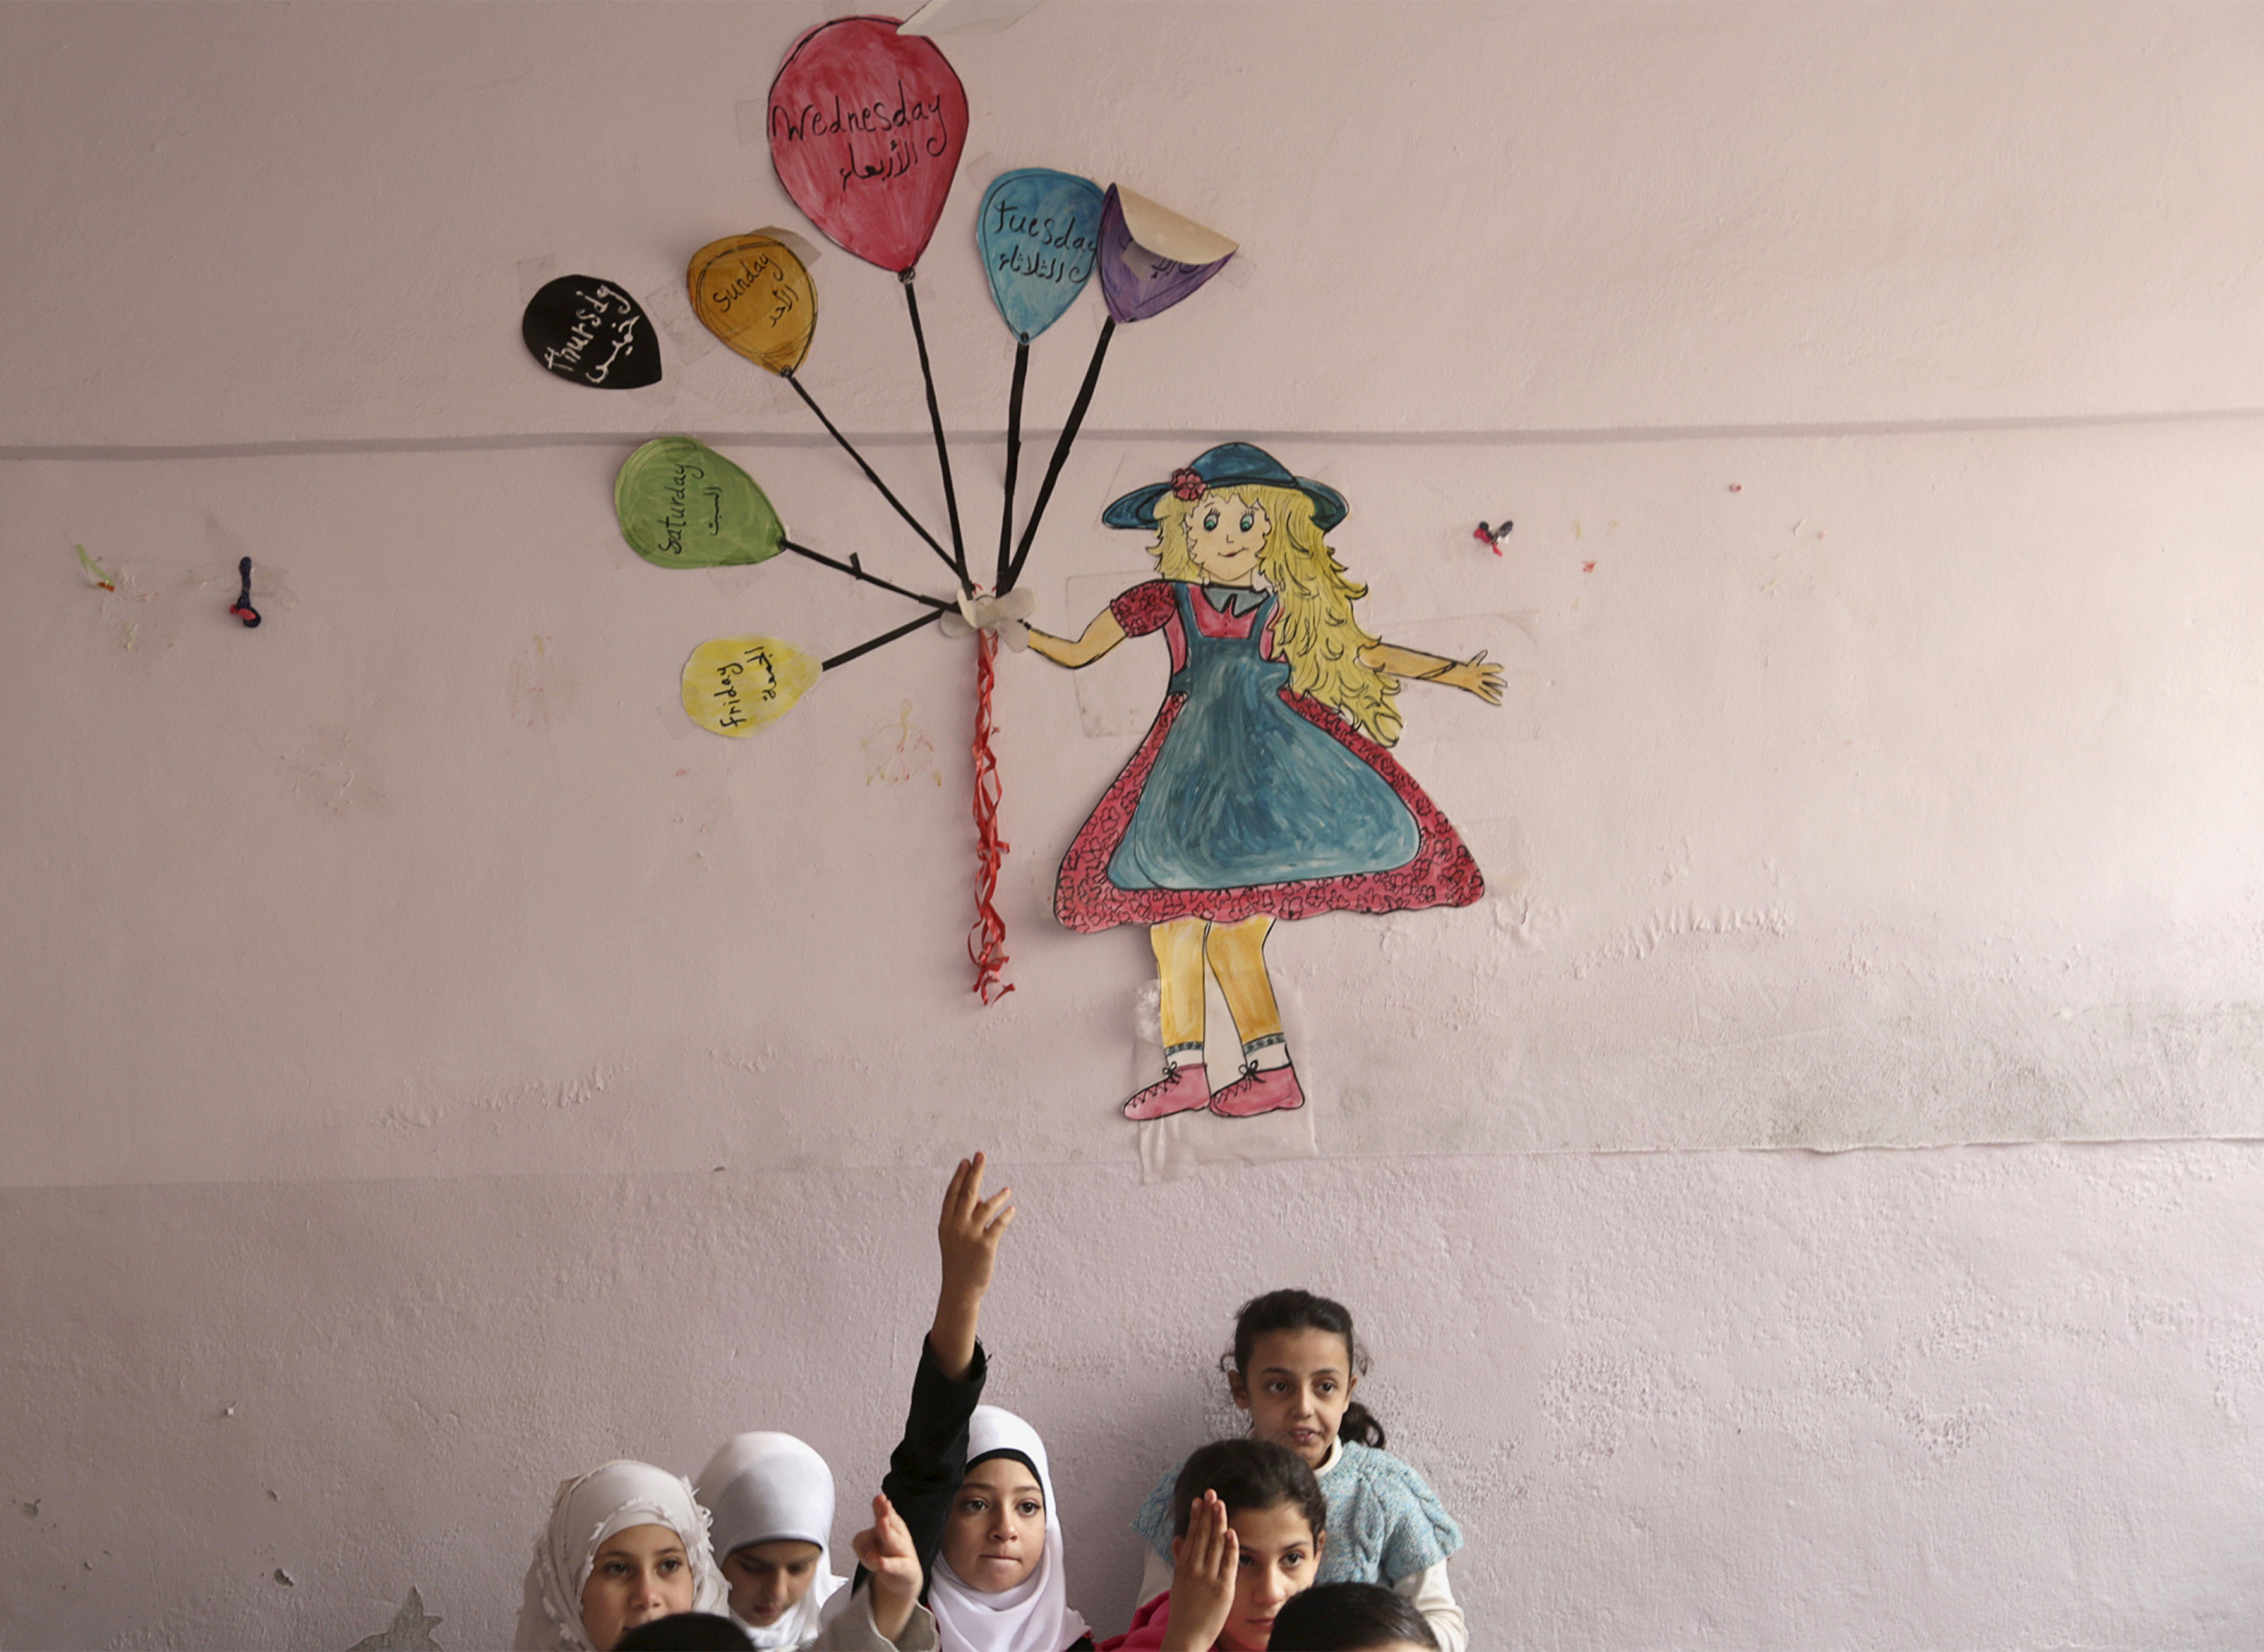 Students attend a class inside Hosam Kamel school in the rebel-controlled area of Maaret al-Numan town in Idlib province, Syria on October 28, 2015. The school, which was bombed and partially destroyed, started the new school year after restoration work was completed, activists said.